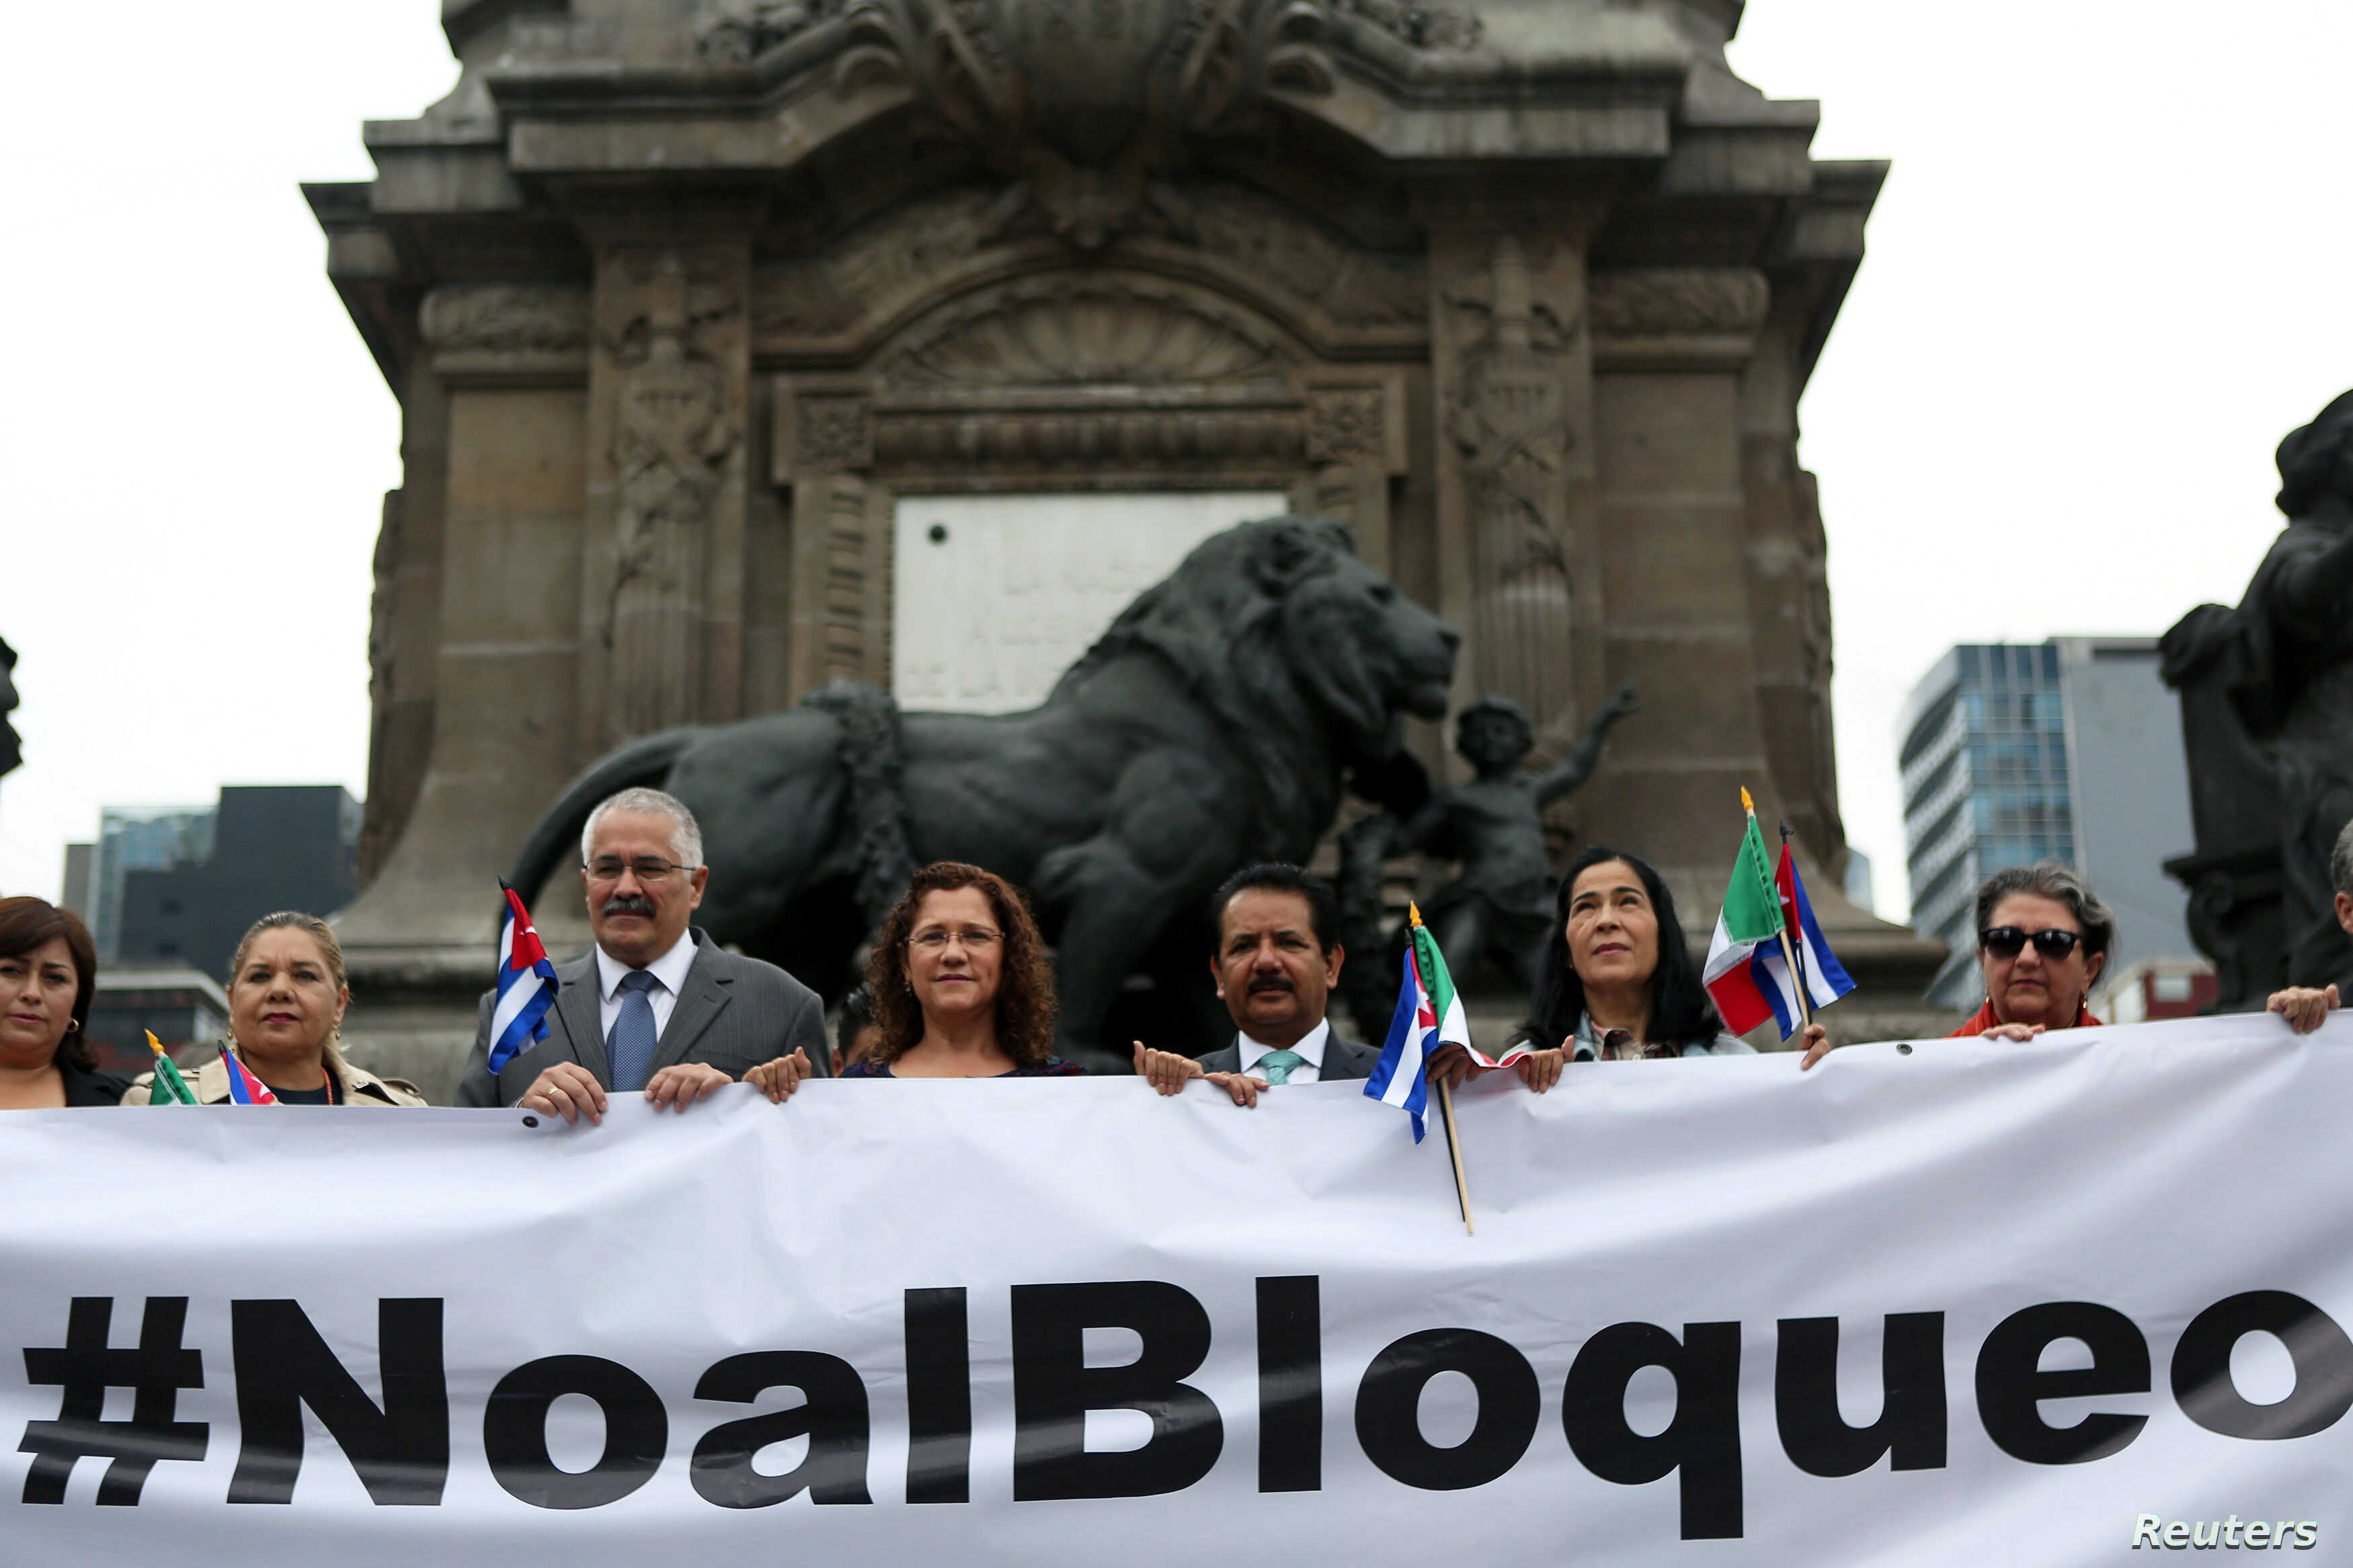 Dagoberto Rodriguez, Cuba's ambassador in Mexico, takes part with members of the Mexico-Cuba Friendship Group of the Chamber of Deputies during a demonstration against the trade embargo on Cuba by the U.S. at Angel de la Independencia monument in Mex...